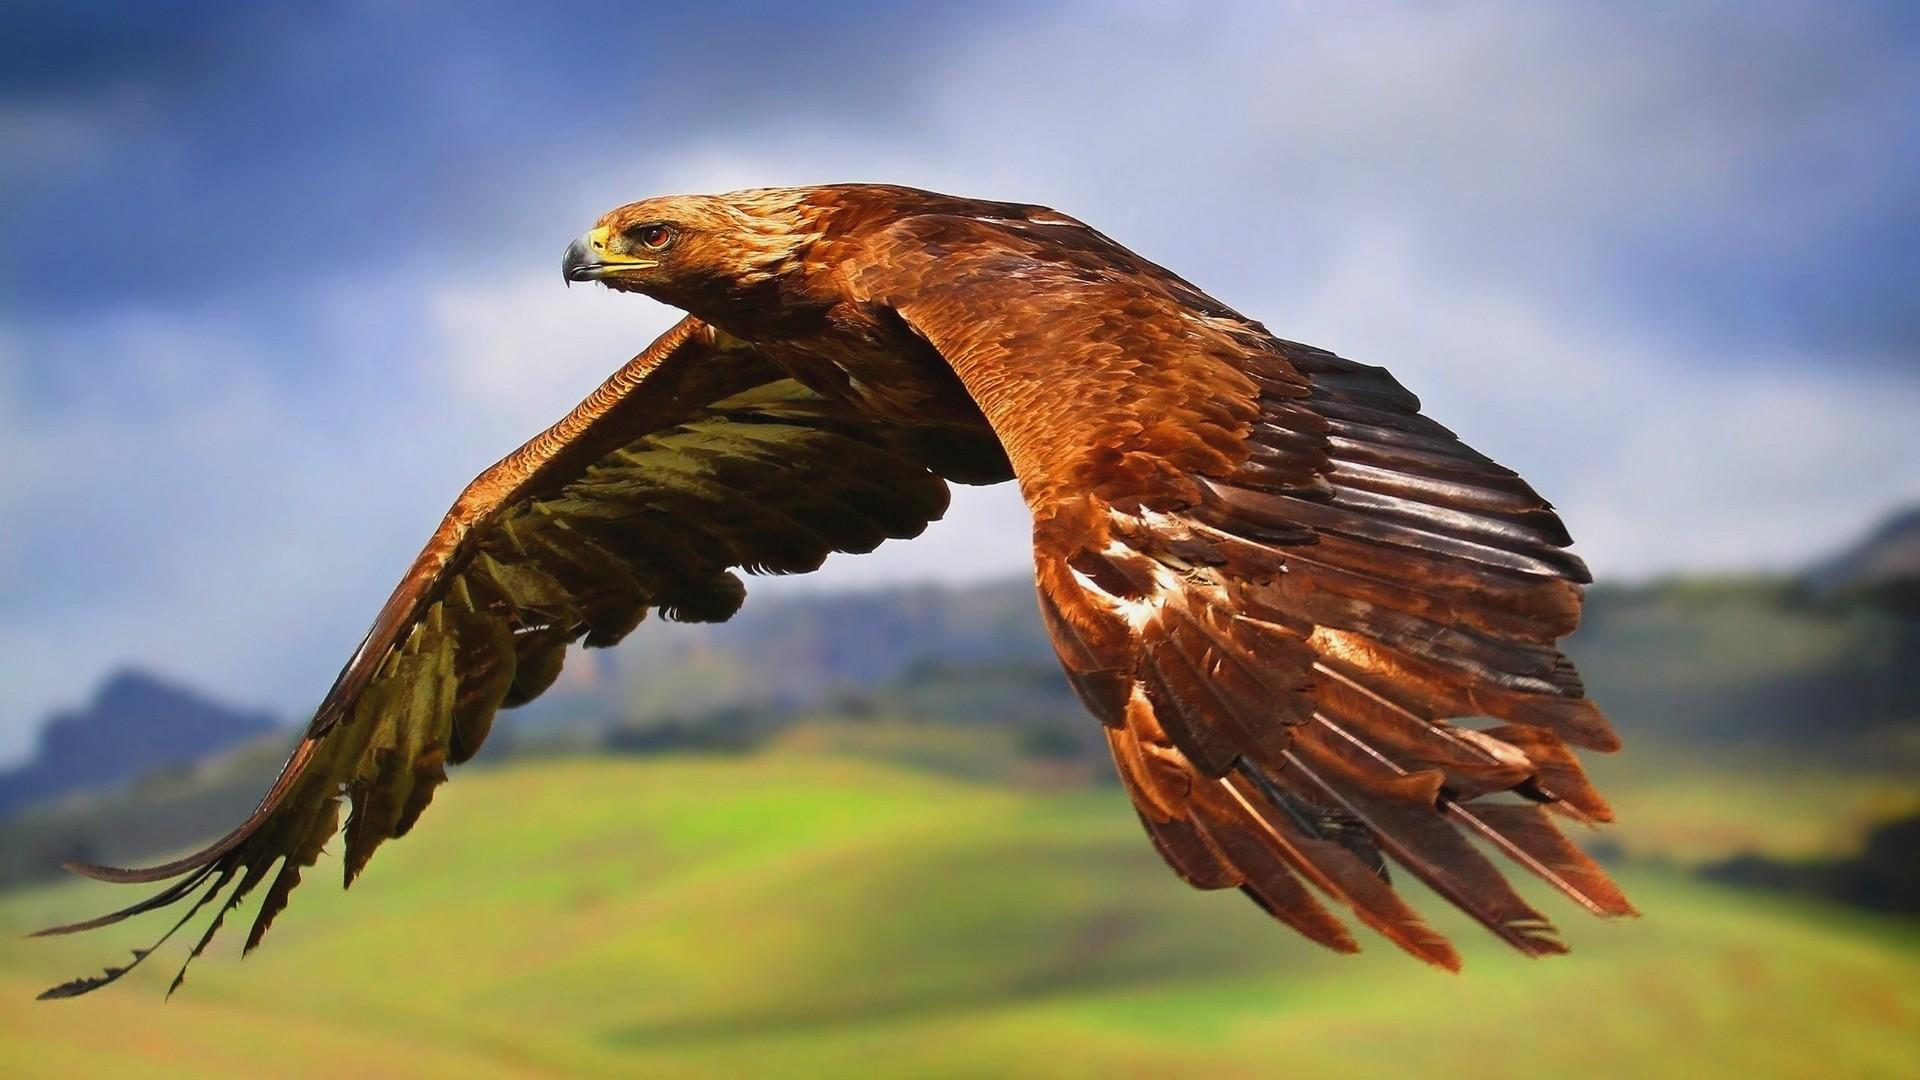 Hawk wallpaper hd download - Hawk iphone wallpaper ...